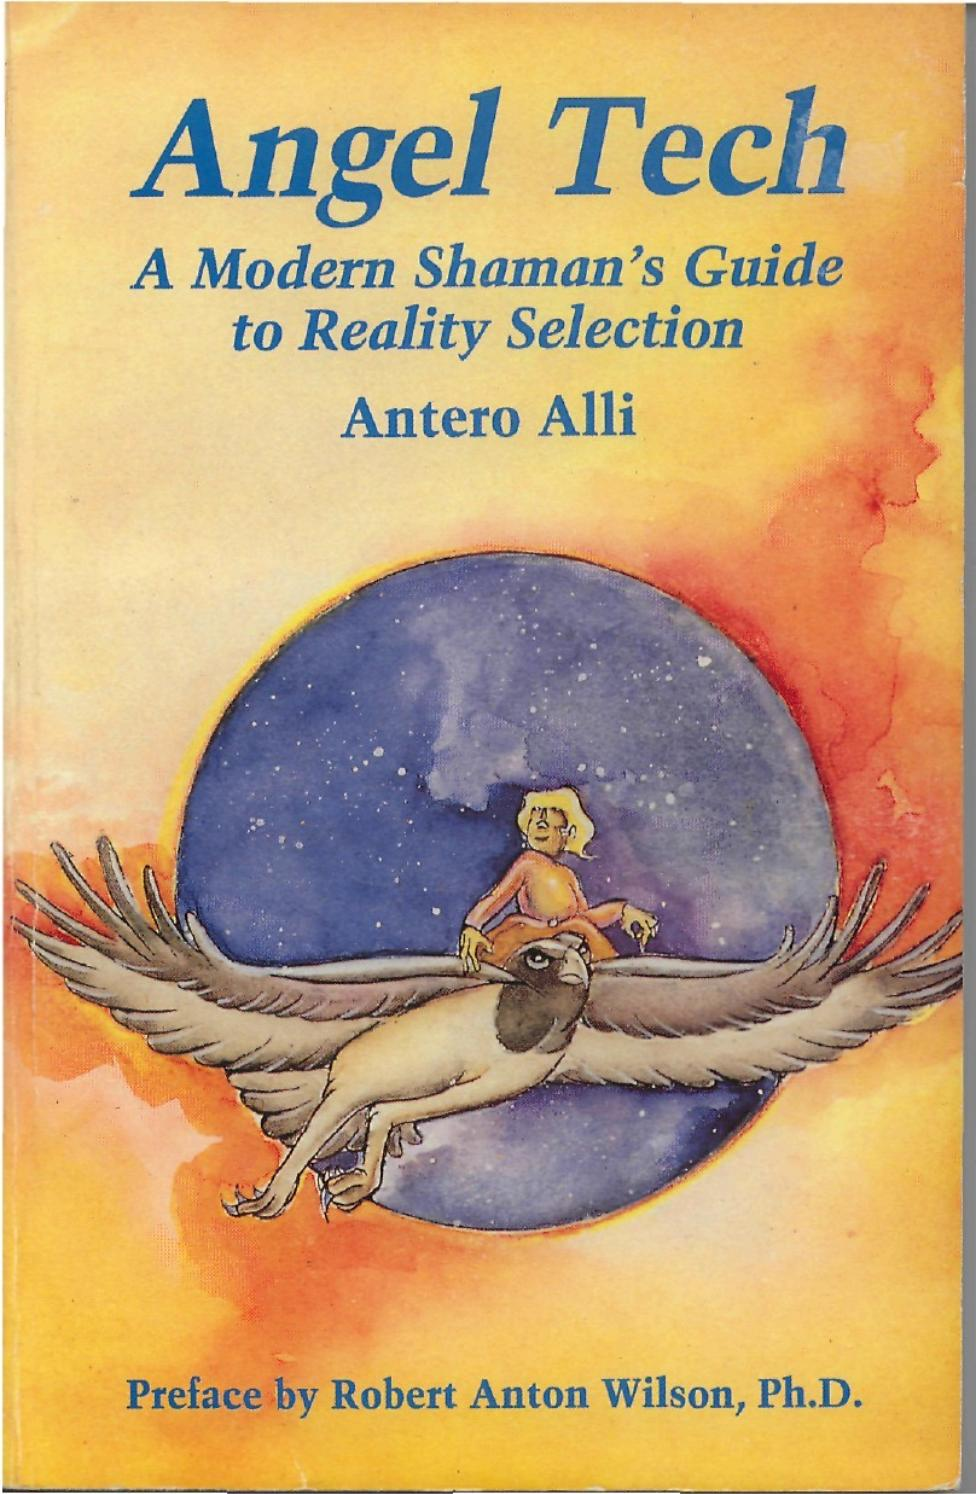 antero alli] angel tech a modern shaman's guide by Ranjan